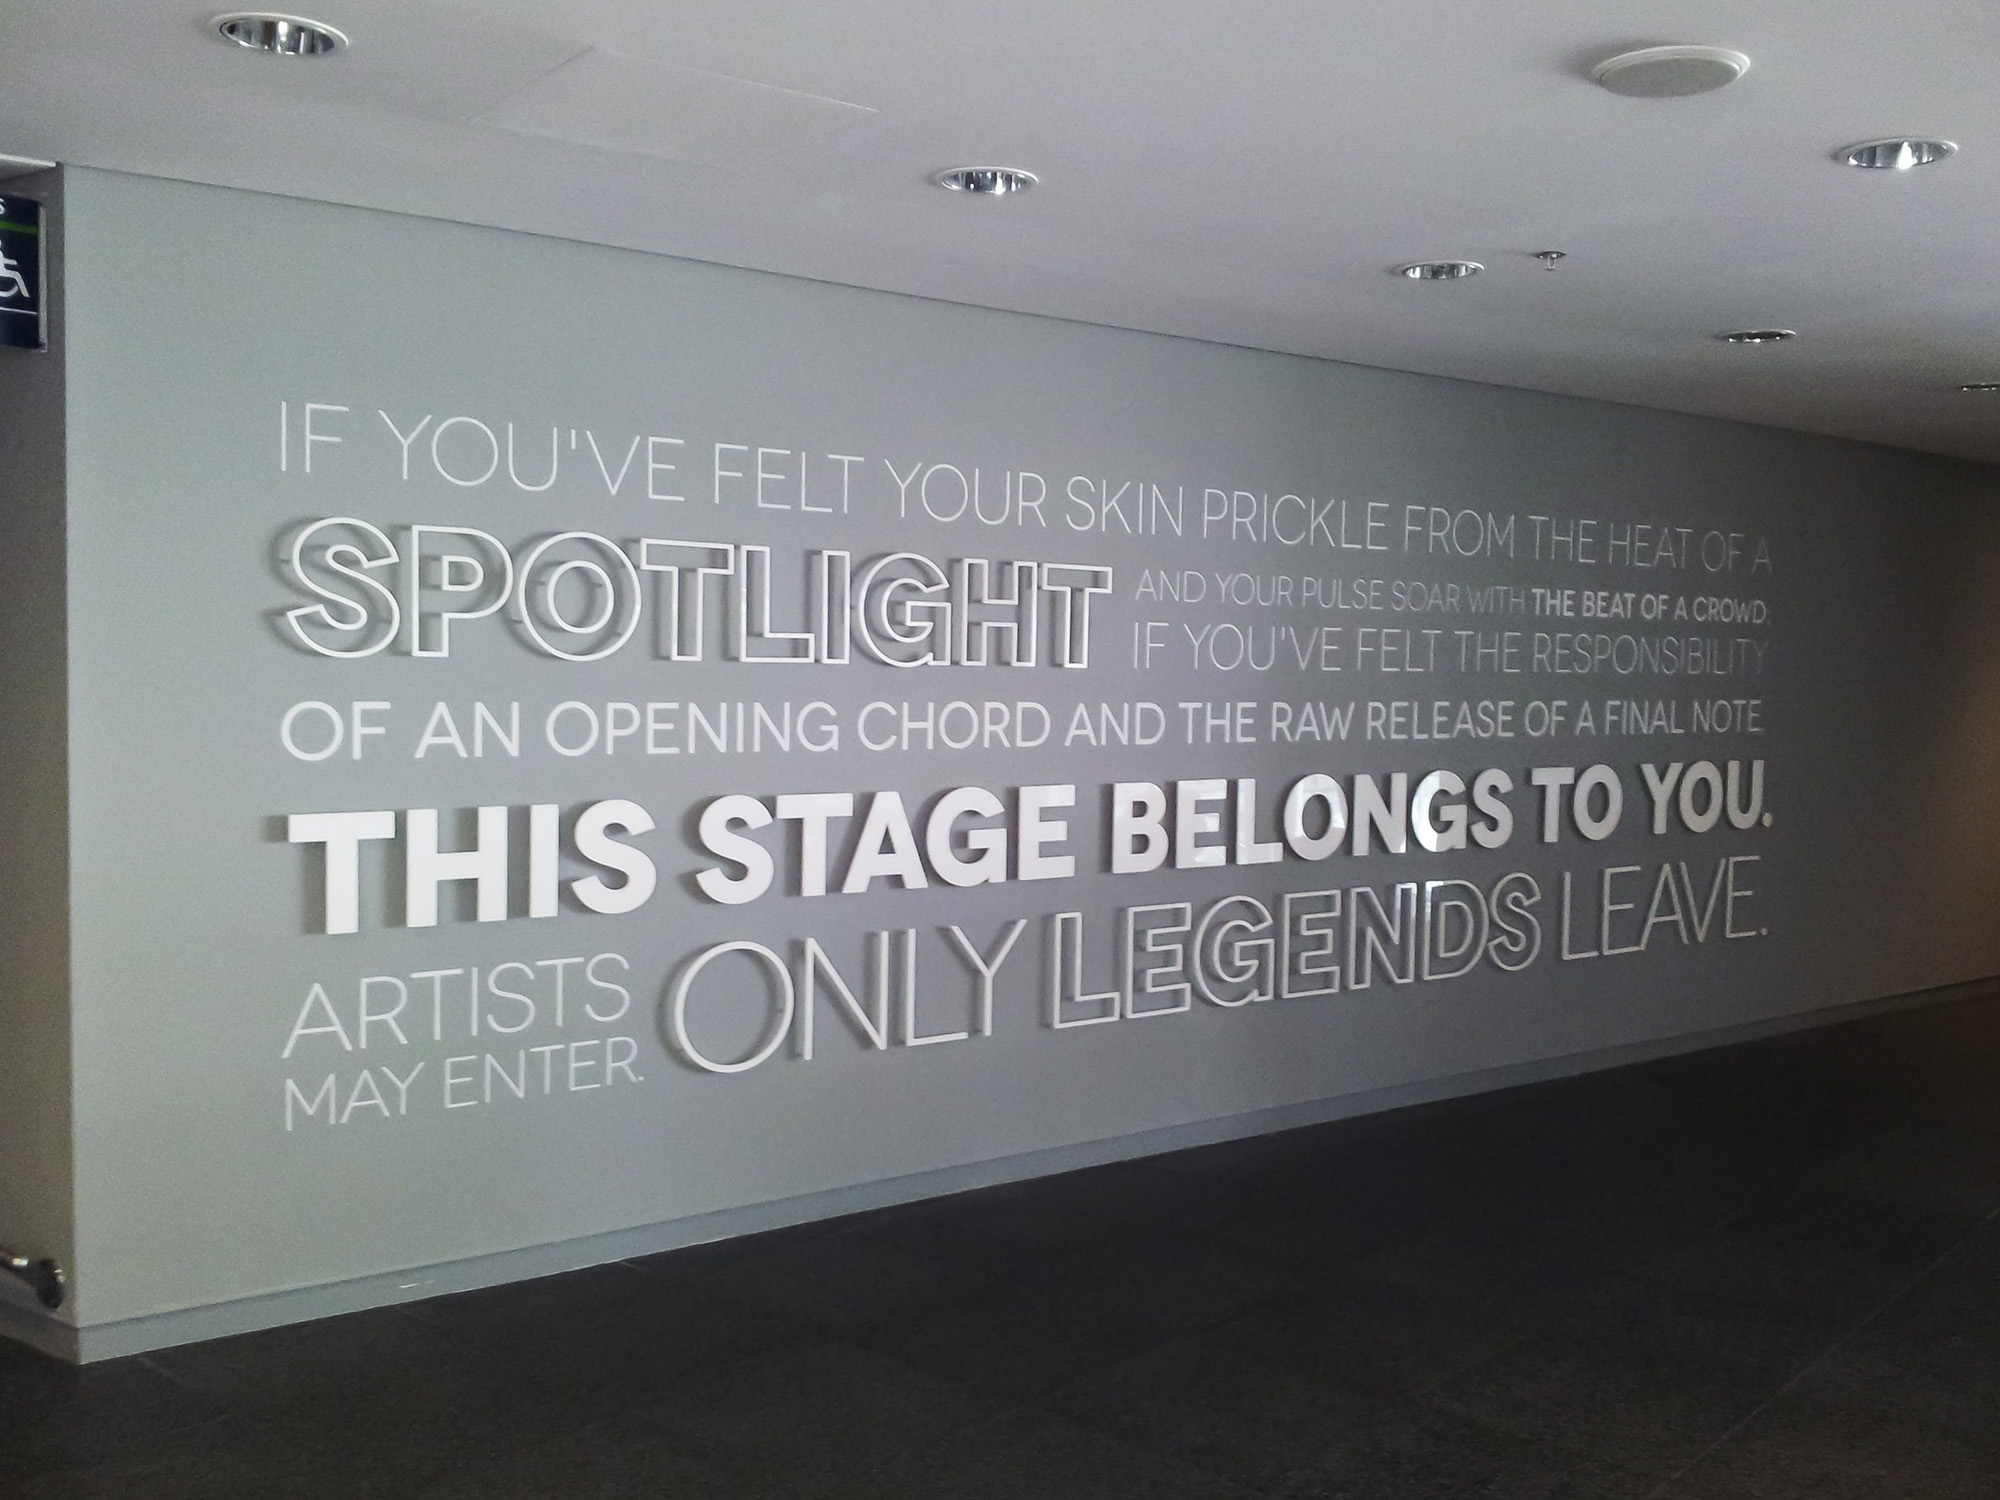 WNSL Wembley - traditional signwriting & dense whit Perspex lettering